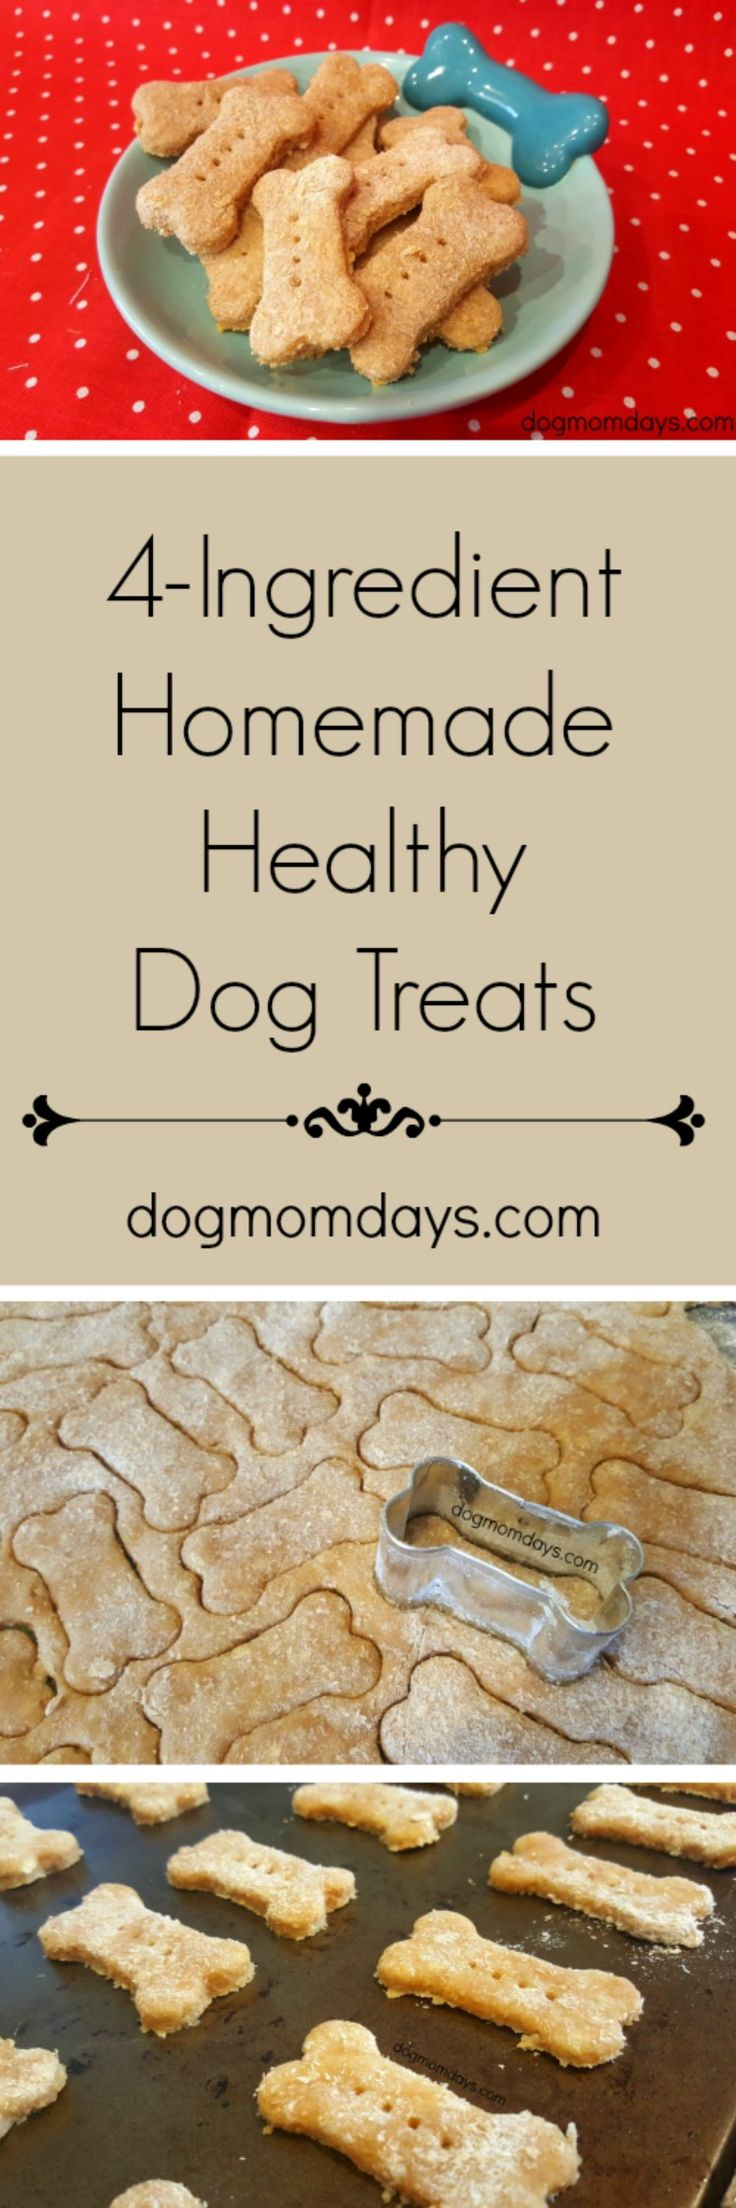 This 4-ingredient recipe for healthy homemade dog treats is super simple and delicious! The ingredients are one that you probably already have at home! Check out the full recipe and other great DIY dog treat recipes on my blog!  Homemade Dog Treats | Limited Ingredient Dog Treats | DIY Dog Treats | Easy Dog Treats